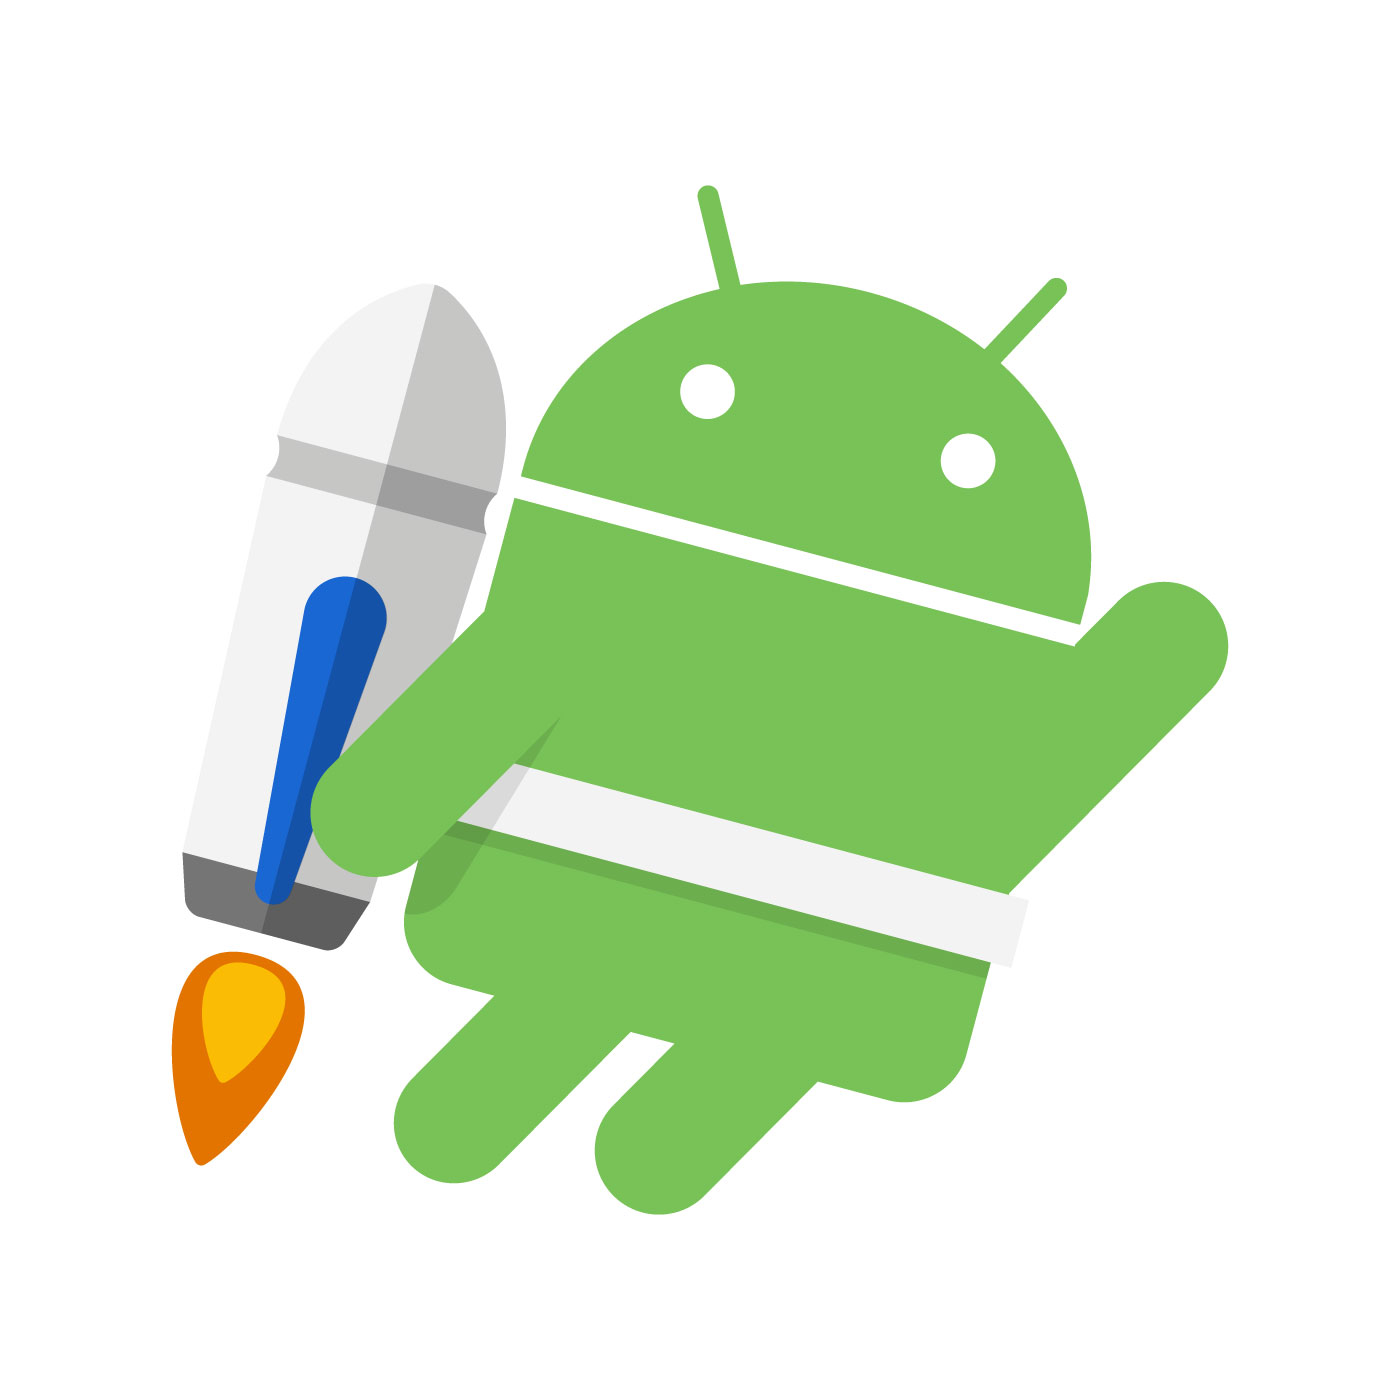 AndroidX Jetpack